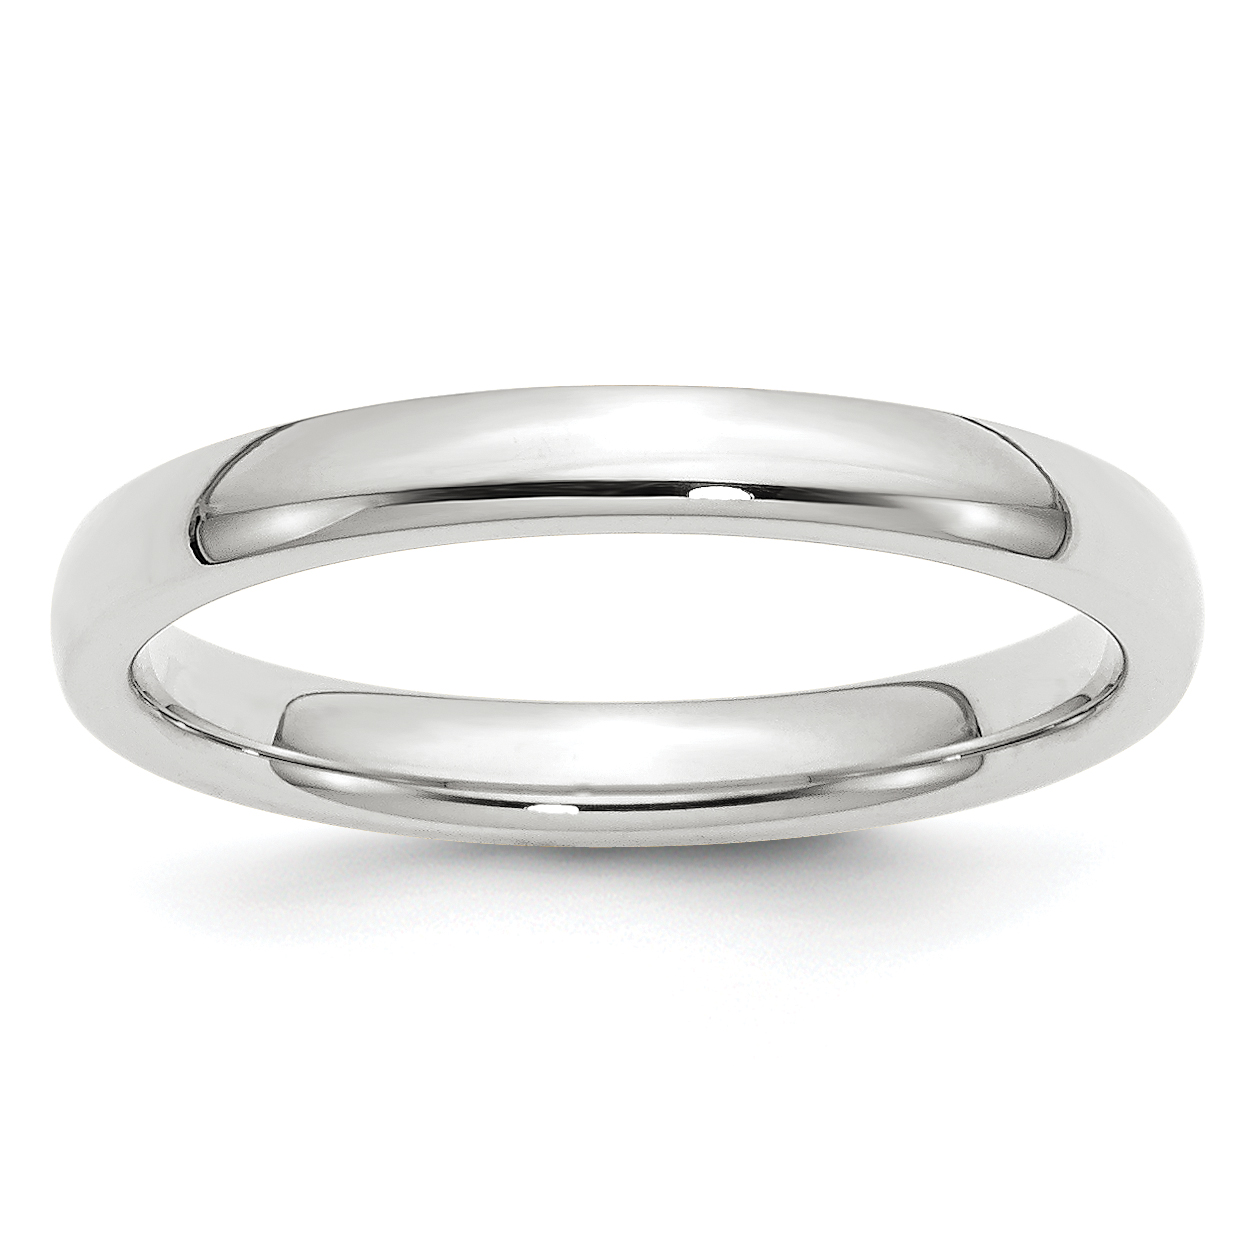 Roy Rose Jewelry 10K White Gold 3mm Standard Comfort Fit Wedding Band Ring Size 5.5